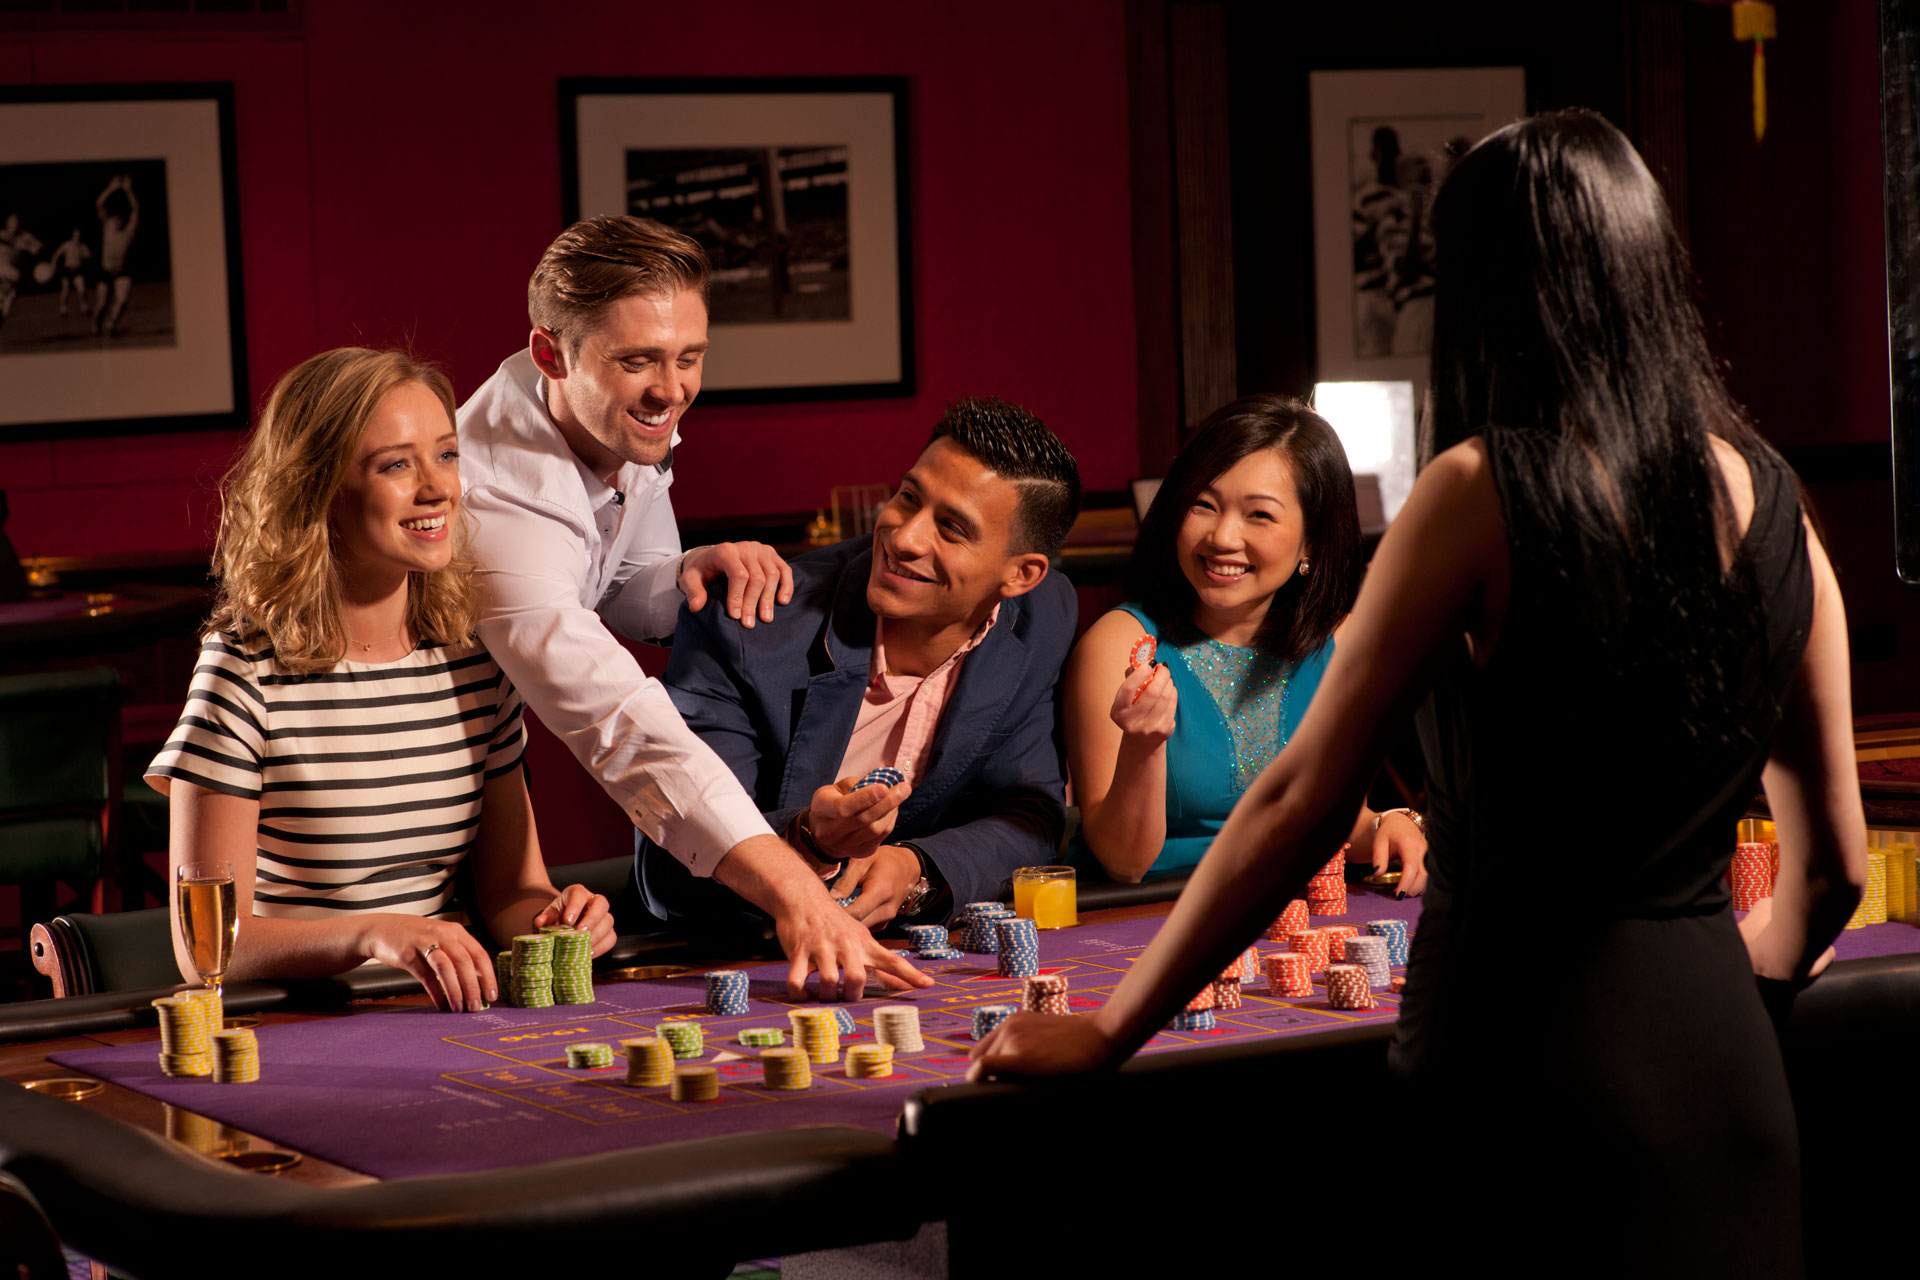 Enjoy Online Casino Games at Your Homely Comfort